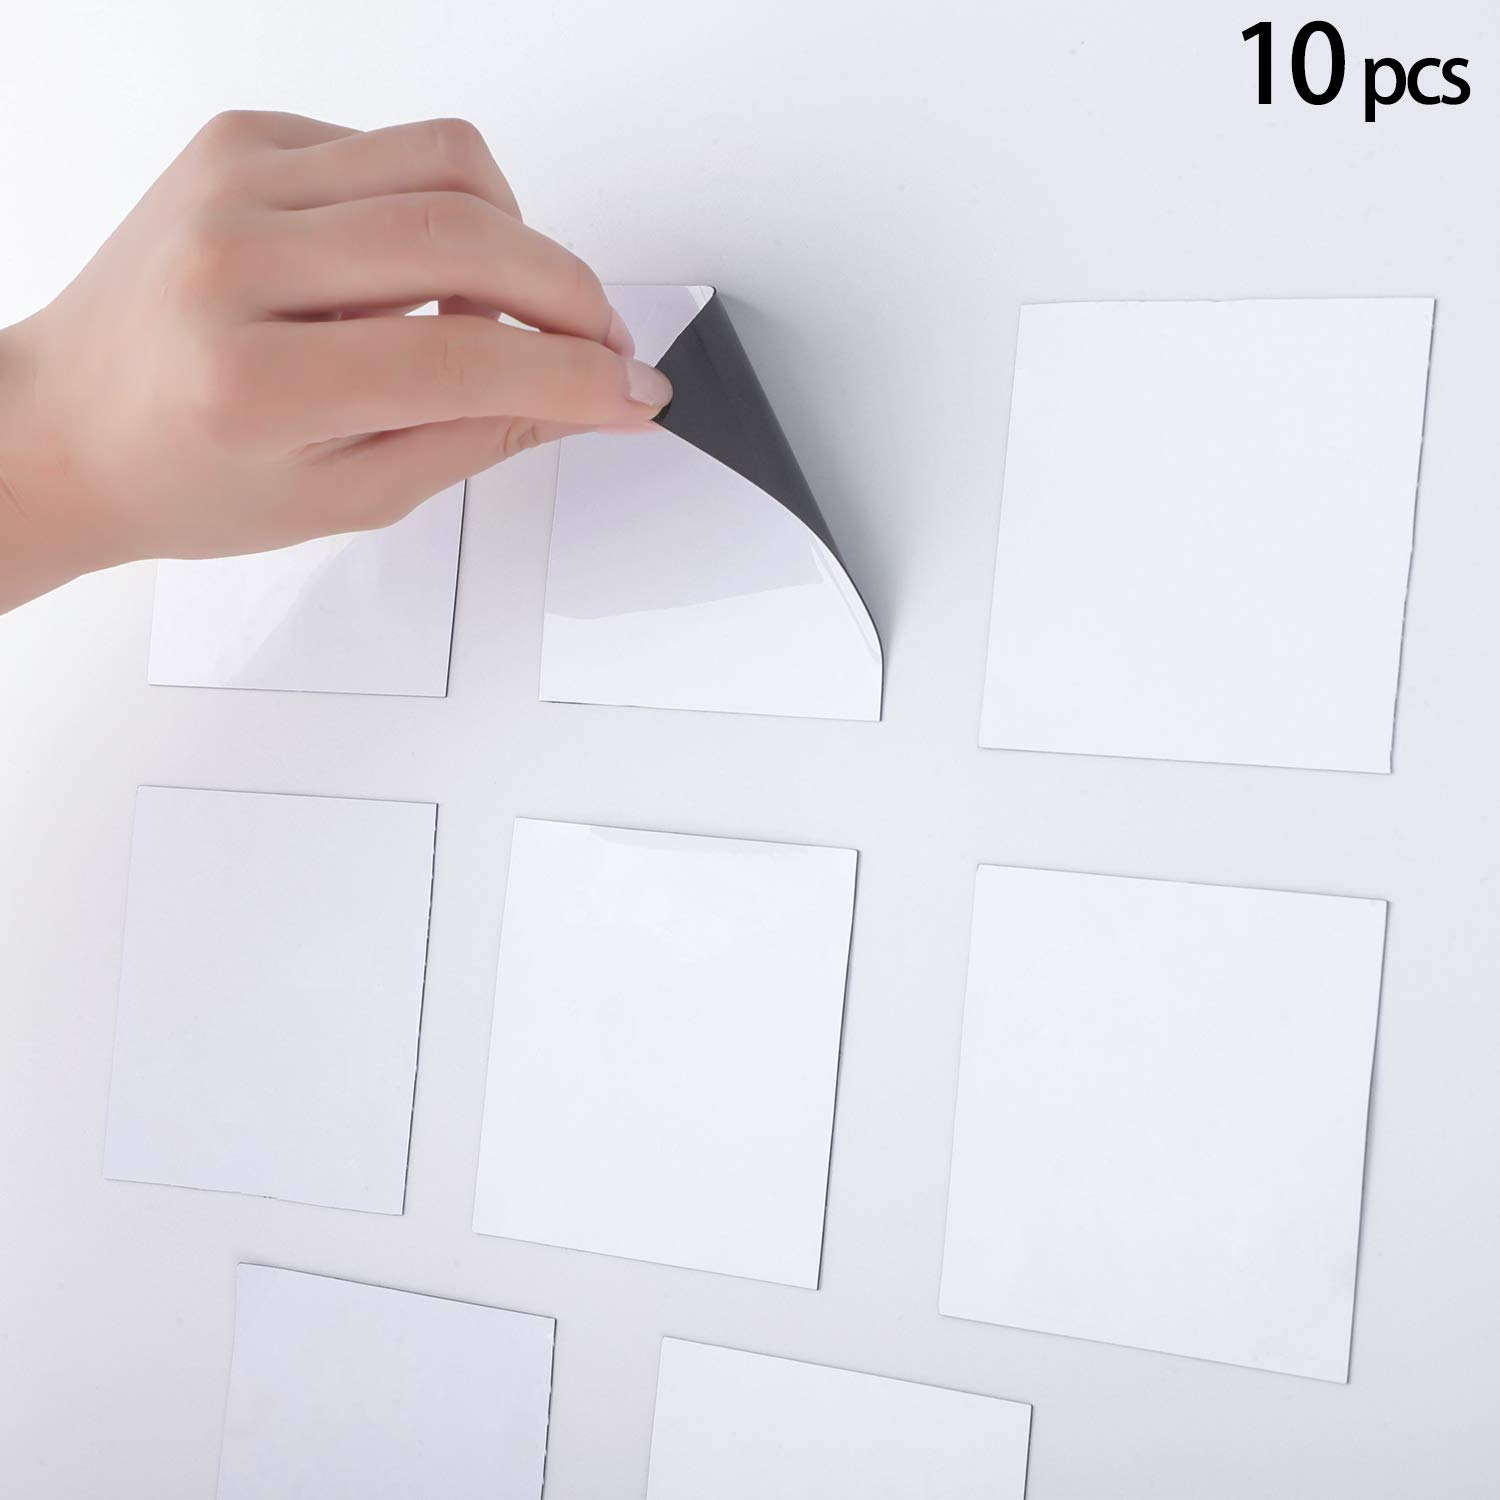 10 Pack Magnetic Stickies Dry-Erase Sticky Notes Reusable Whiteboard Stickers,Dry Erase Whiteboard Film Surface for Walls/Doors/Tables/Cabinets and More (5 x 5 Inch/ 13 x 13 cm)